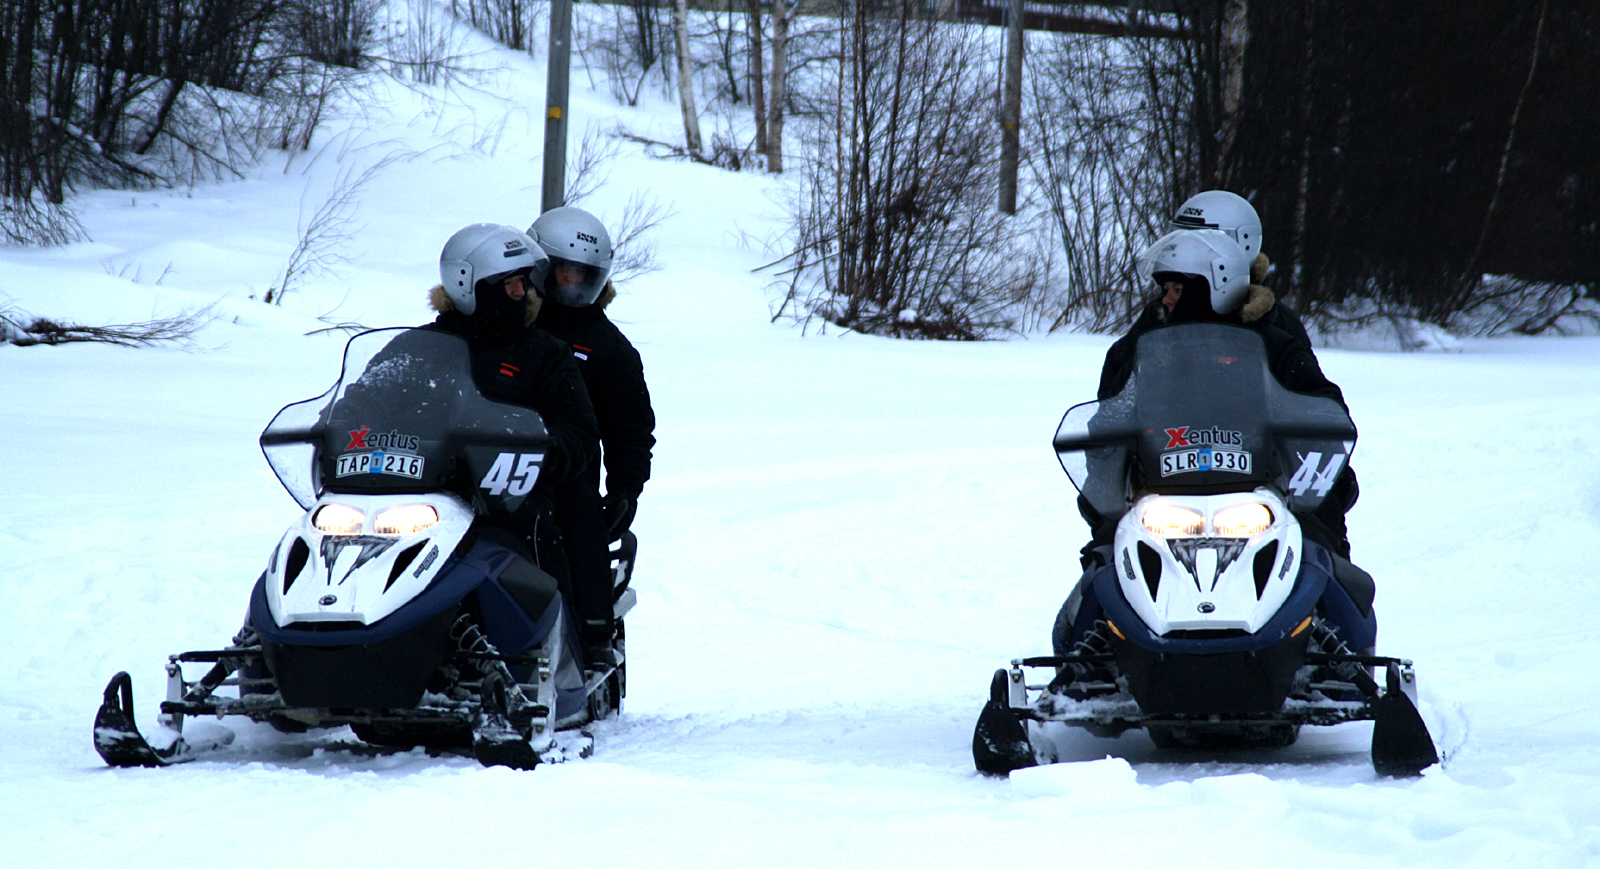 Experience a snow mobile tour.